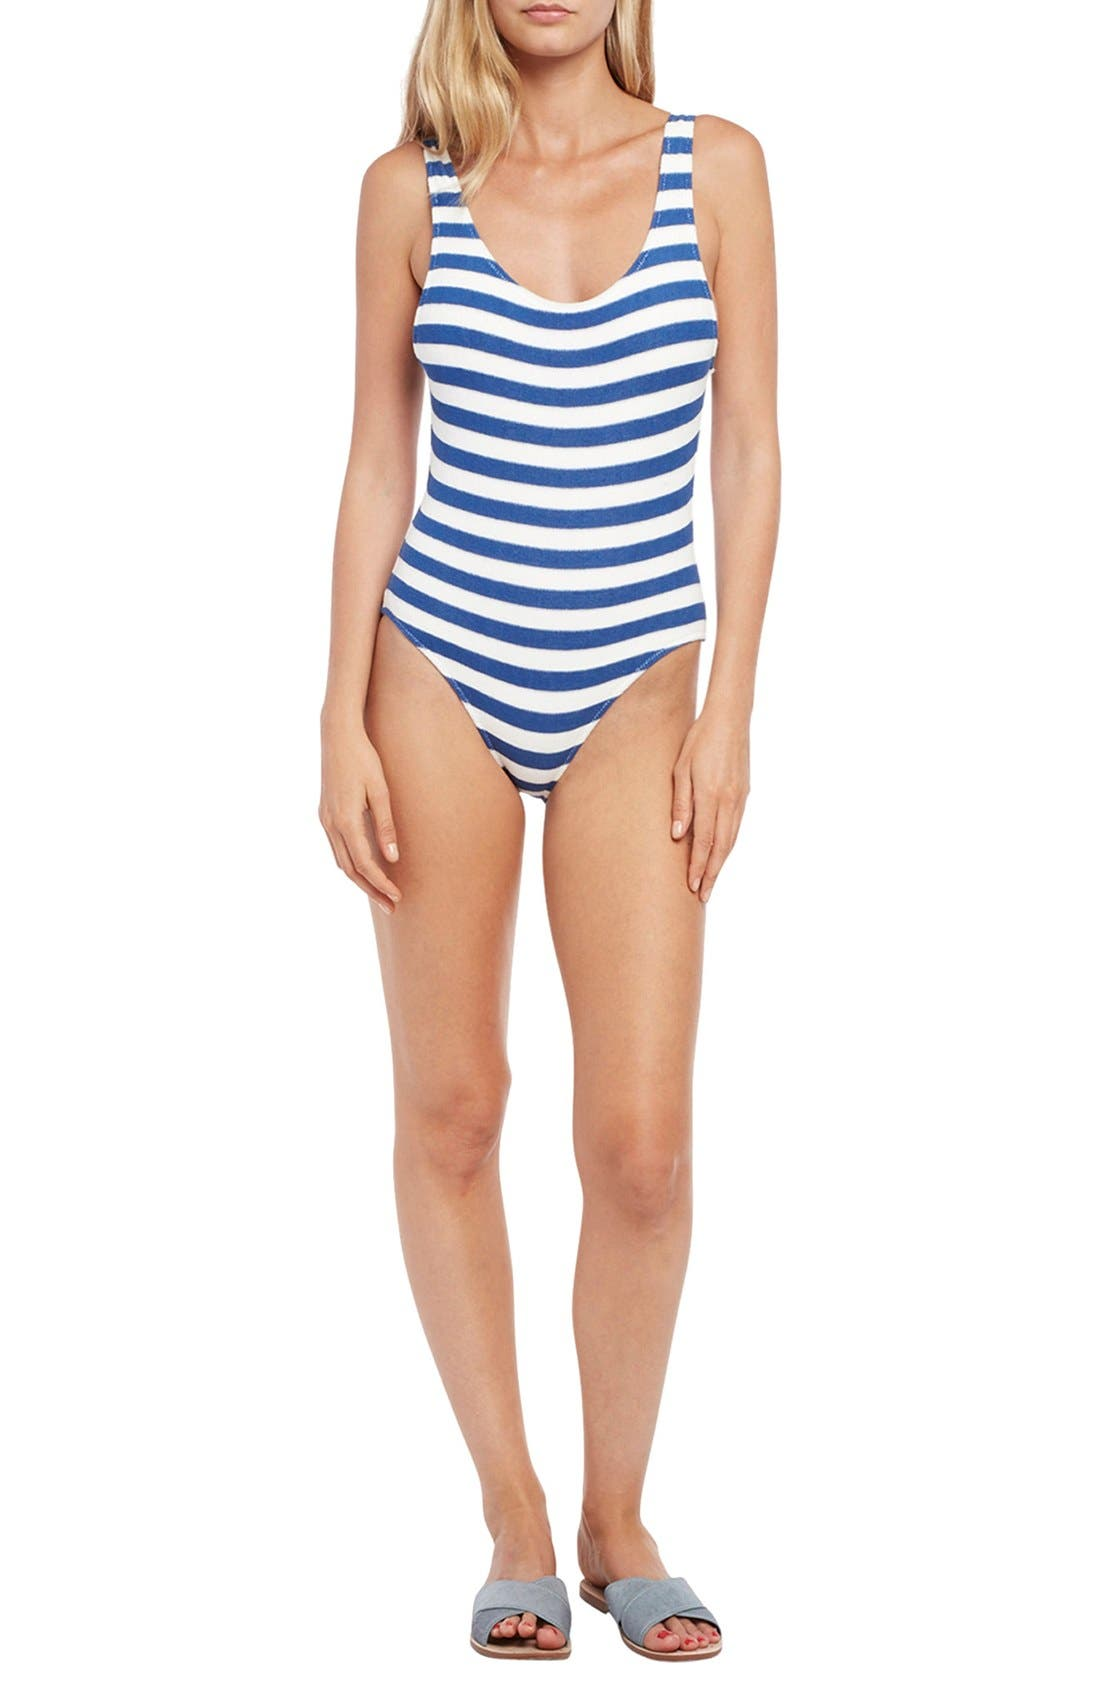 'The Anne-Marie' Scoop Back One-Piece Swimsuit, Main, color, 400